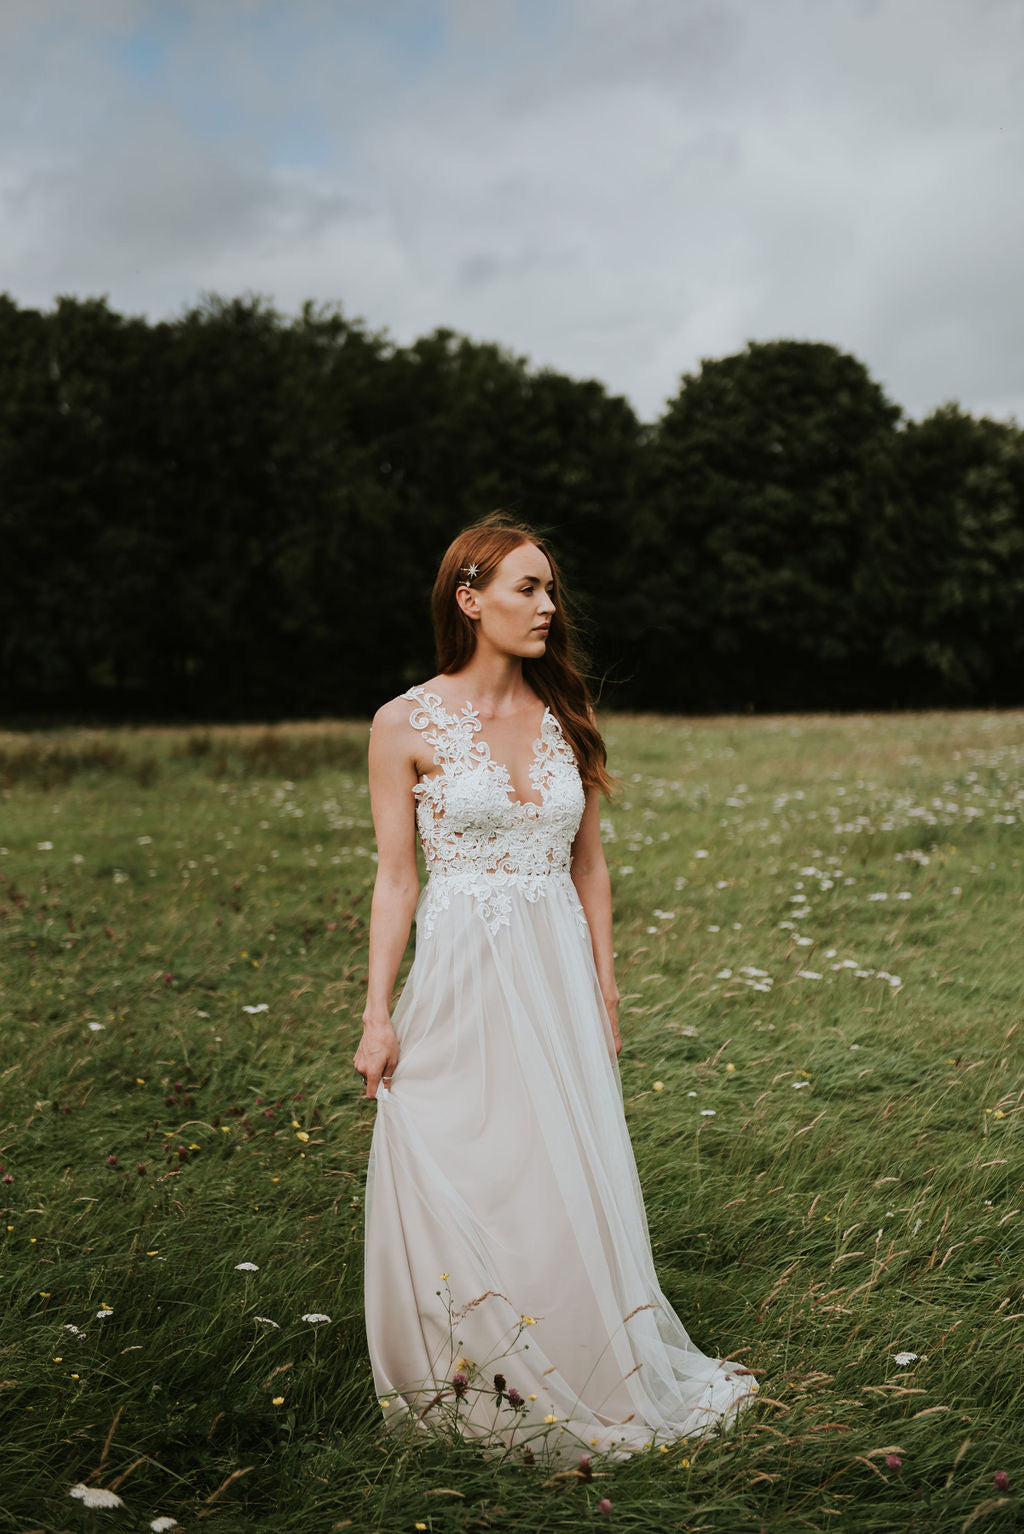 Imogen // Gupure Lace Illusion Wedding Dress